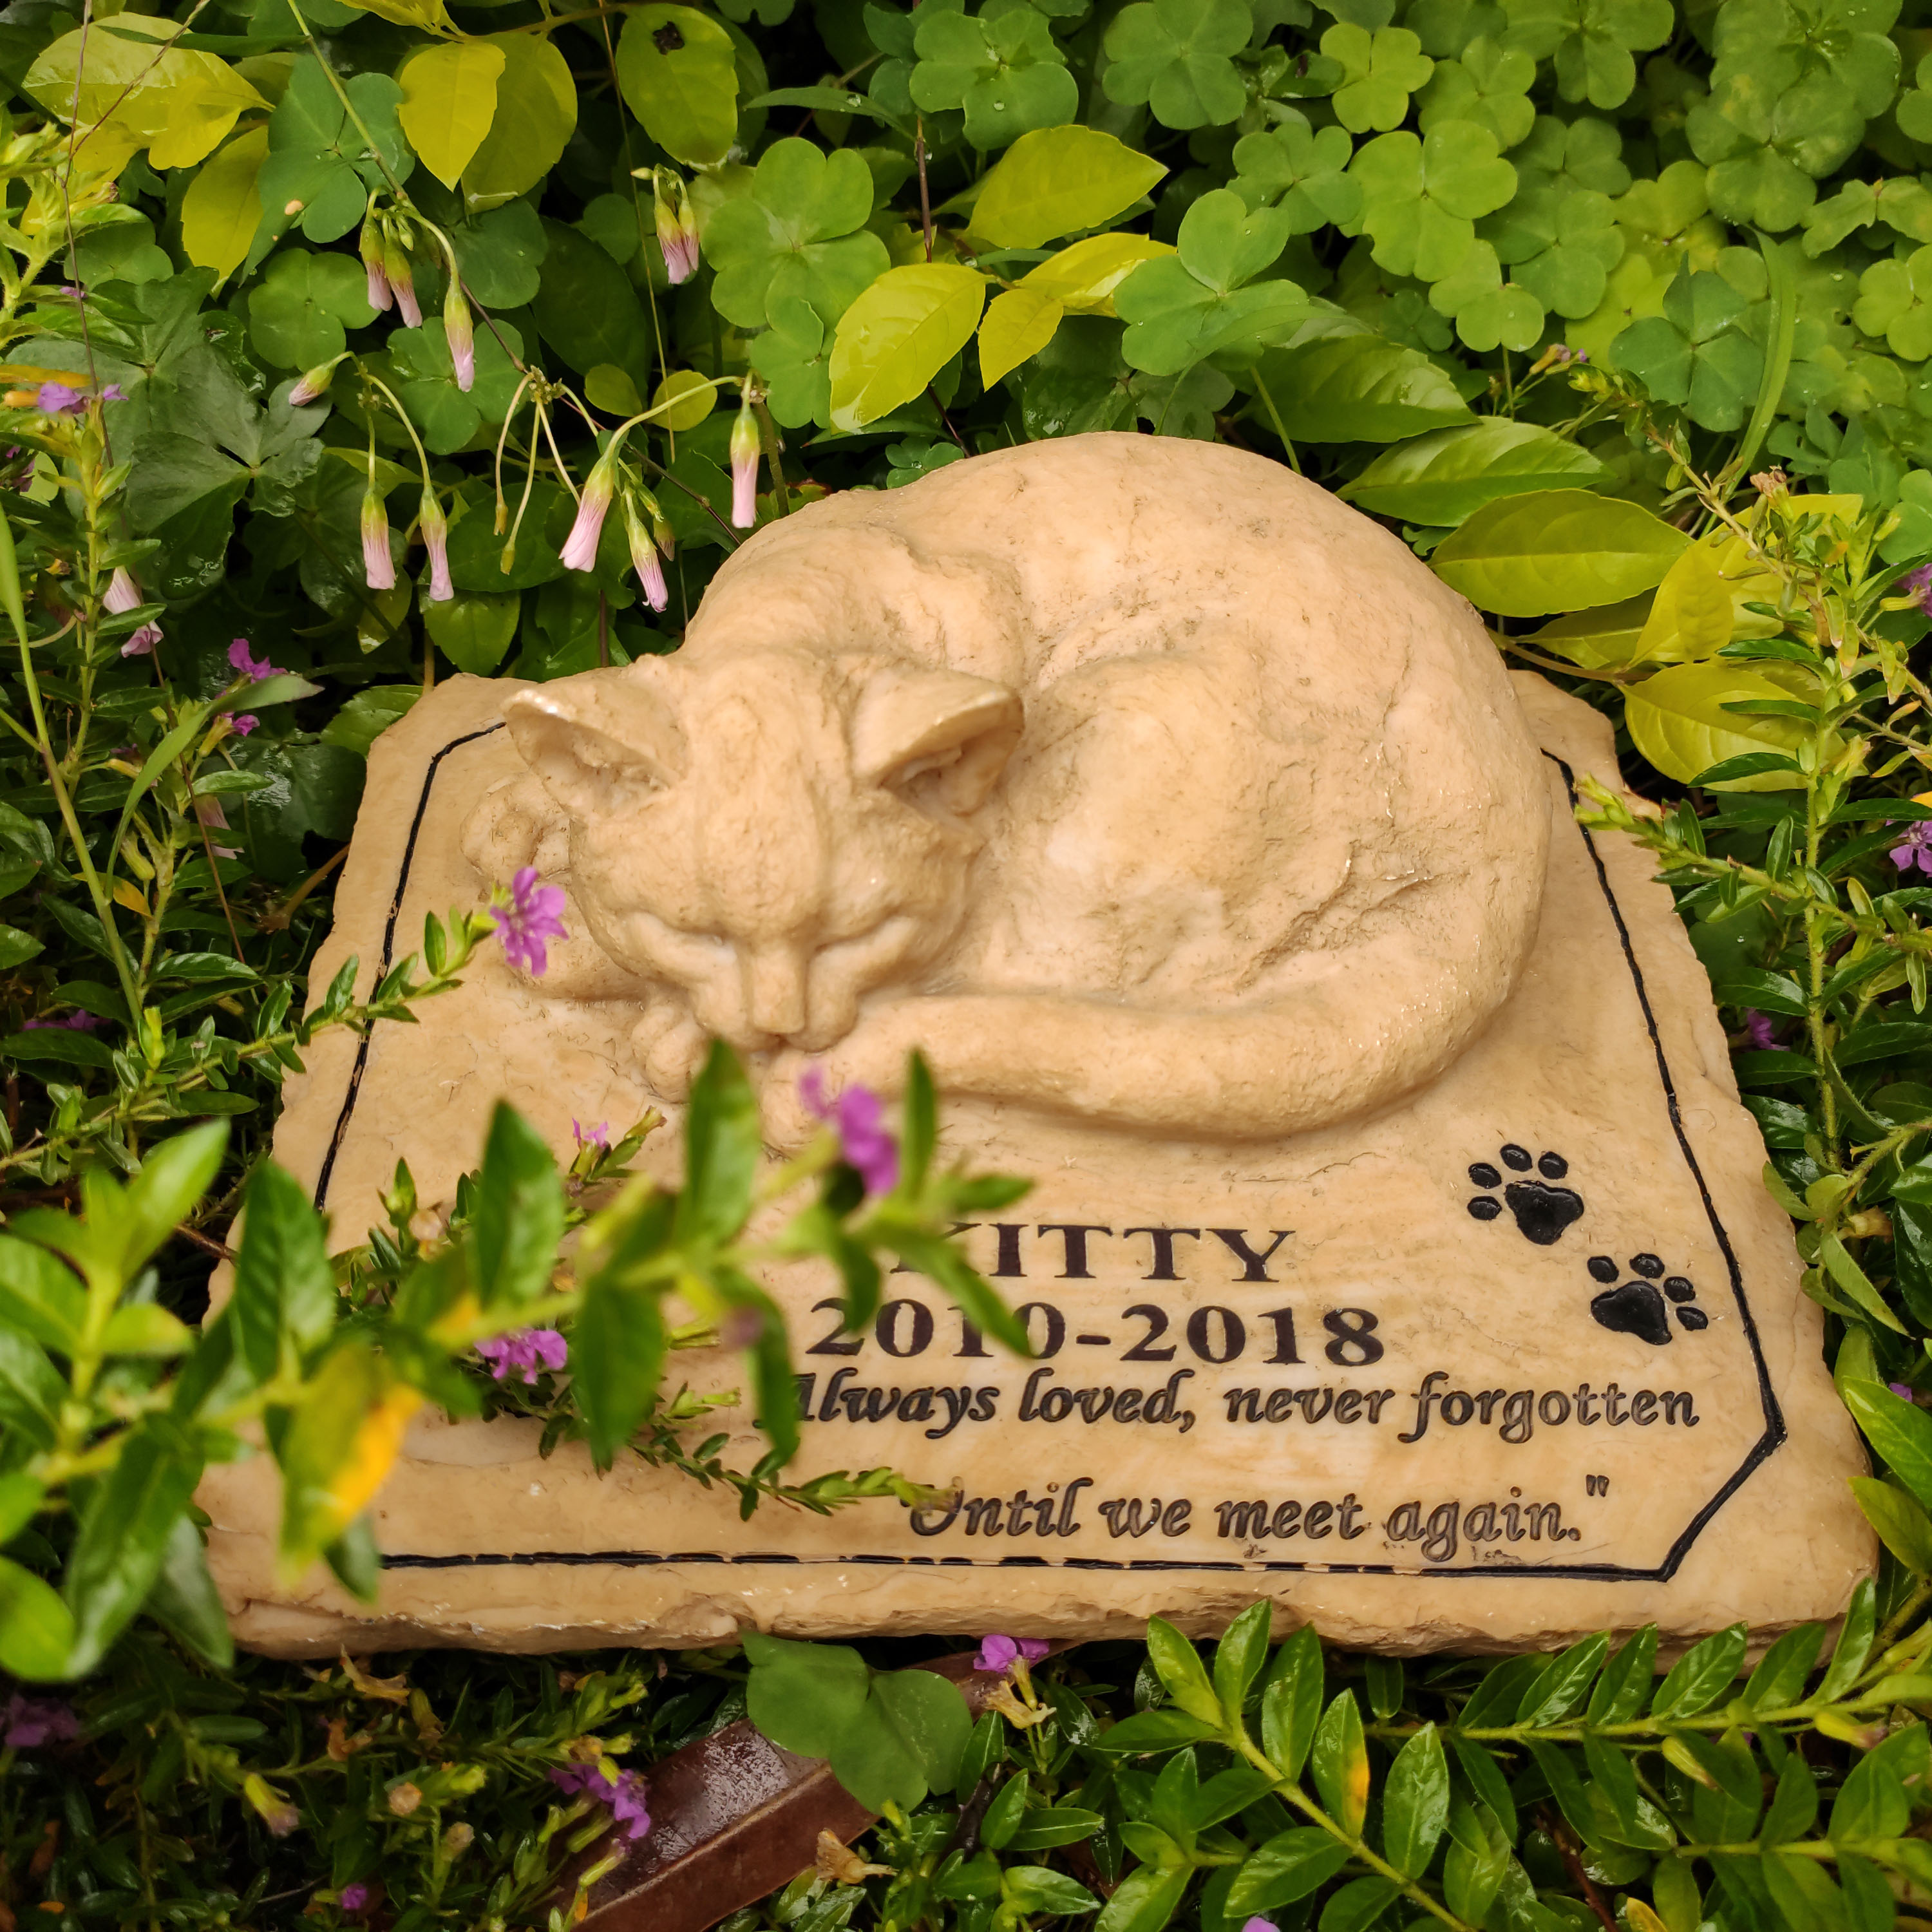 Pet Memorial Stones Personalized Name Date Cat Memorial Stones Tombstones Outdoors Or Indoors For Garden Backyard Grave Markers